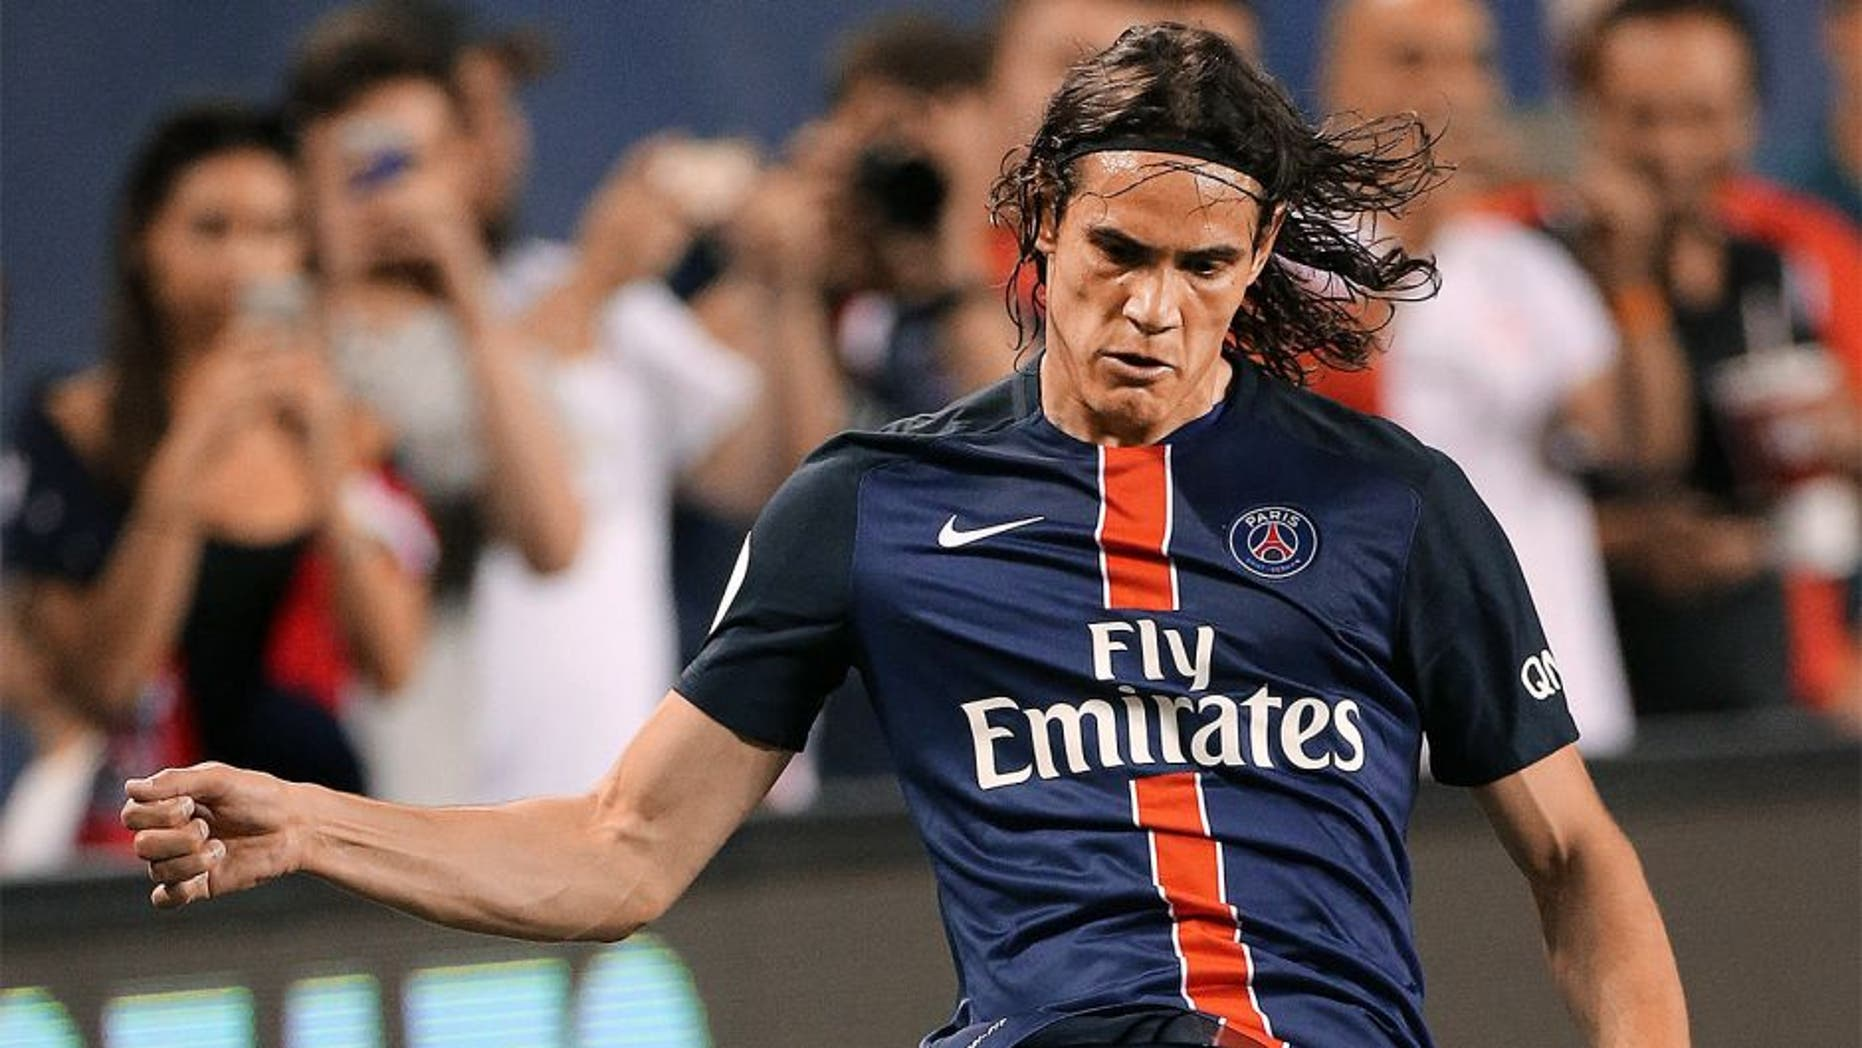 CHICAGO, IL - JULY 29: Edinson Cavani of PSG in action during the International Champions Cup 2015 game between Manchester United and Paris Saint-Germain at Soldier Field on July 29, 2015 in Chicago, Illinois. (Photo by Jean Catuffe/Getty Images)